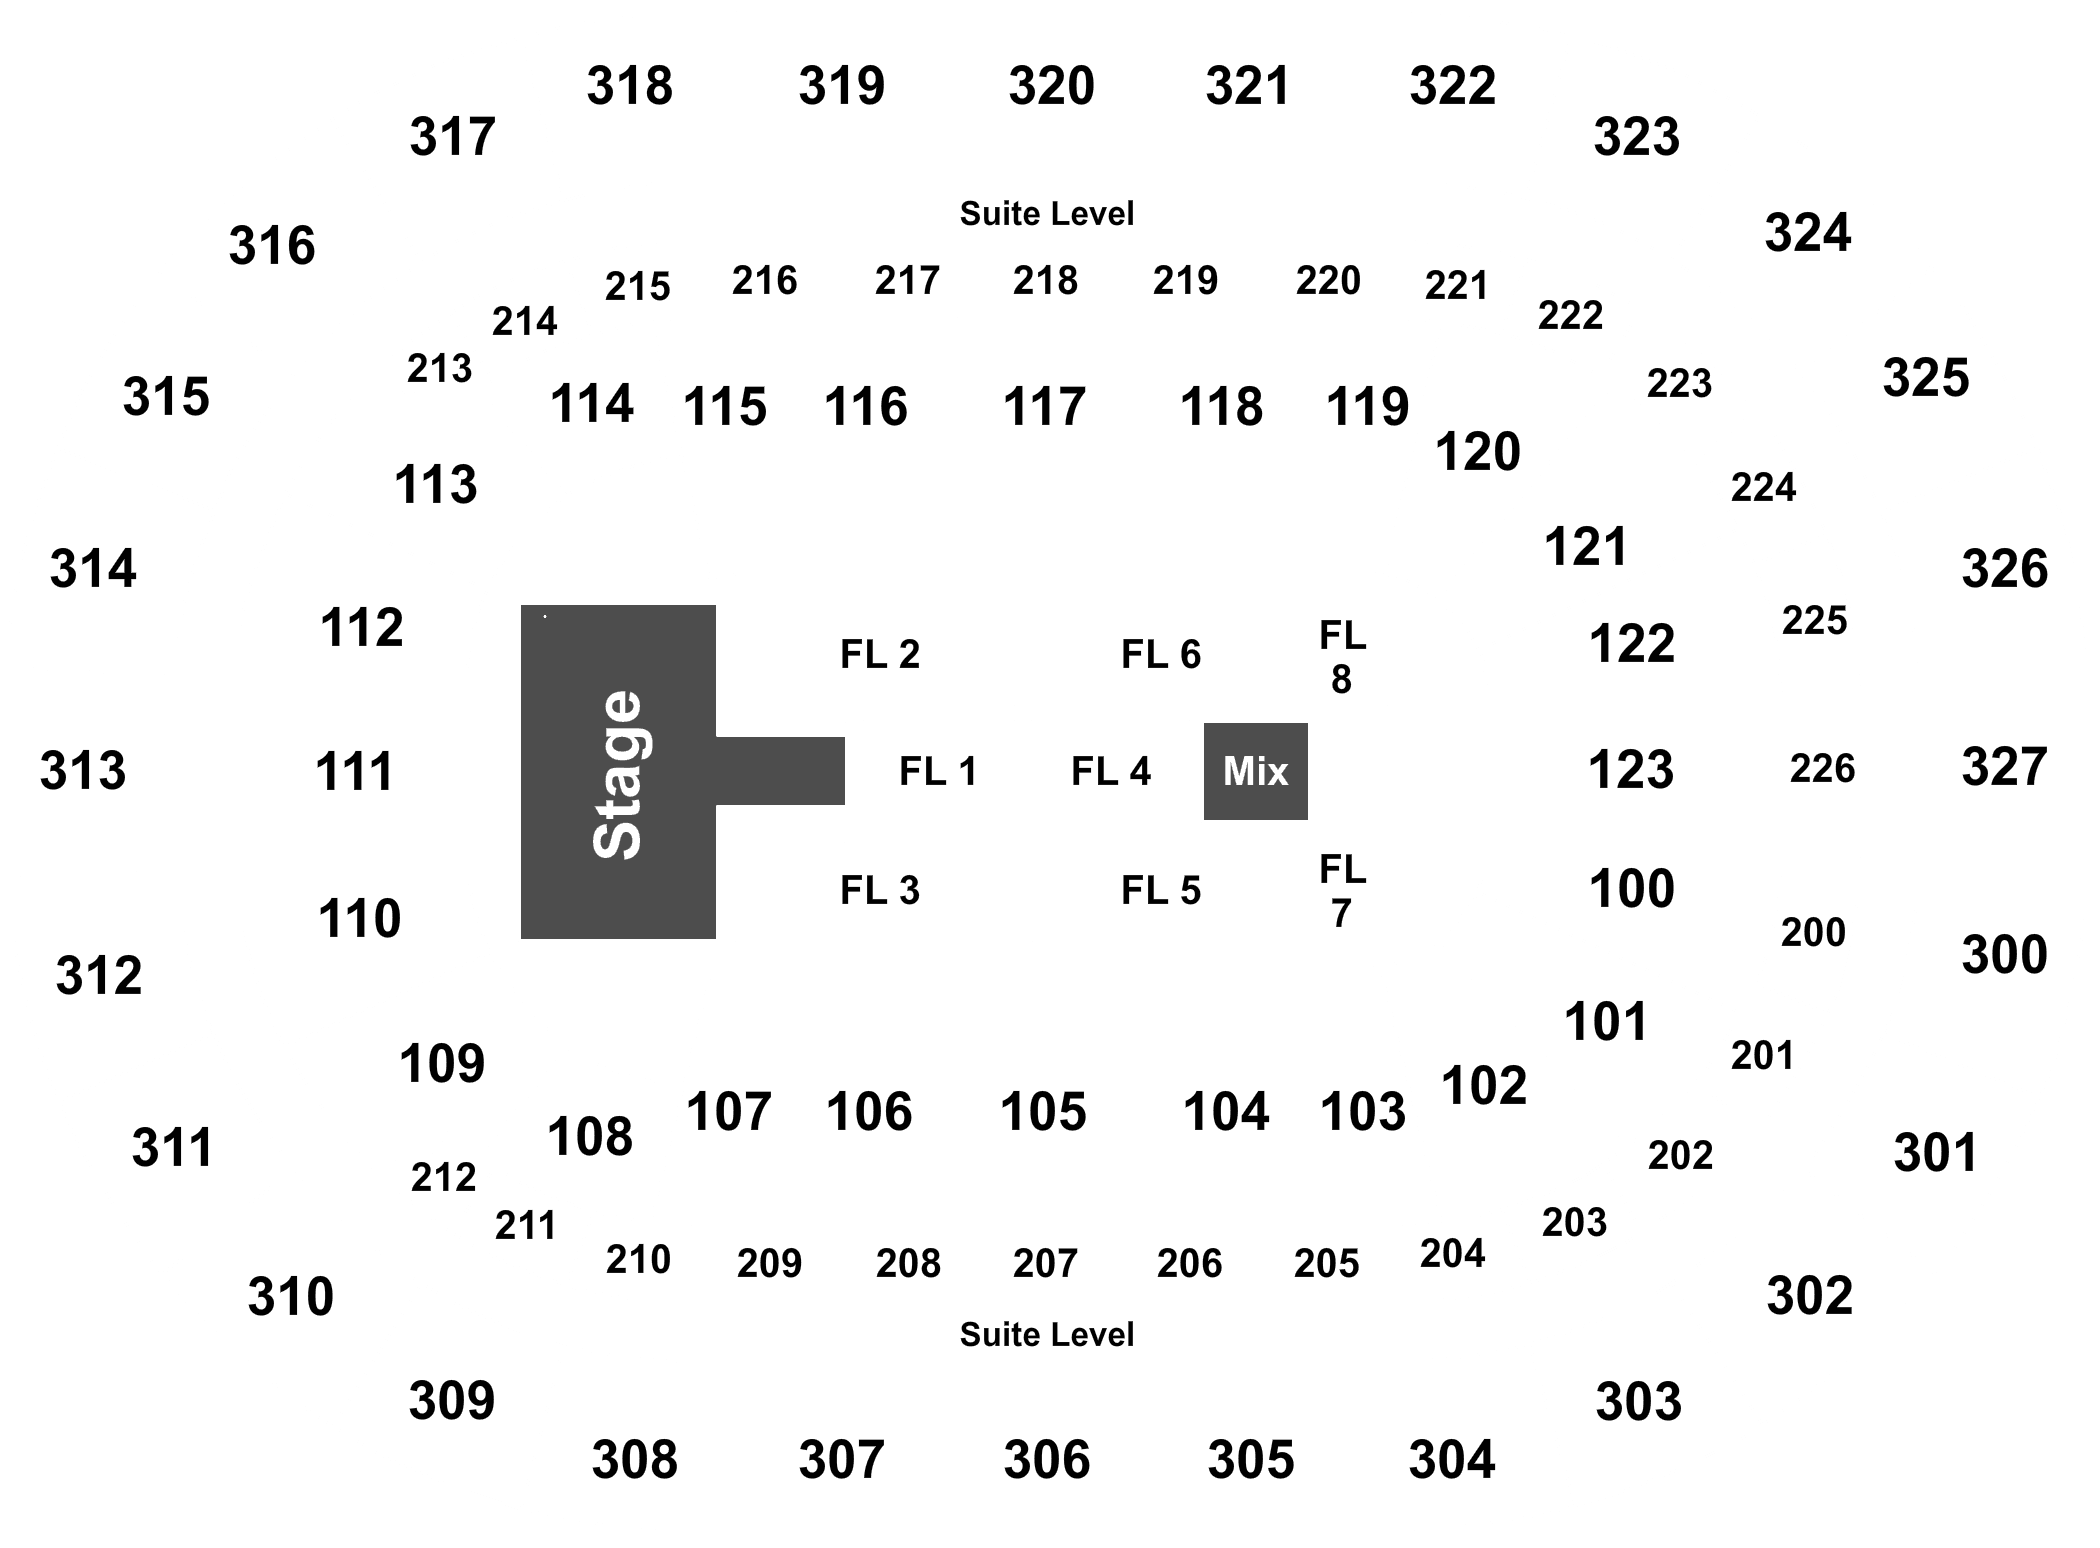 Journey def leppard tickets at first niagara center on may 26 full map kristyandbryce Choice Image